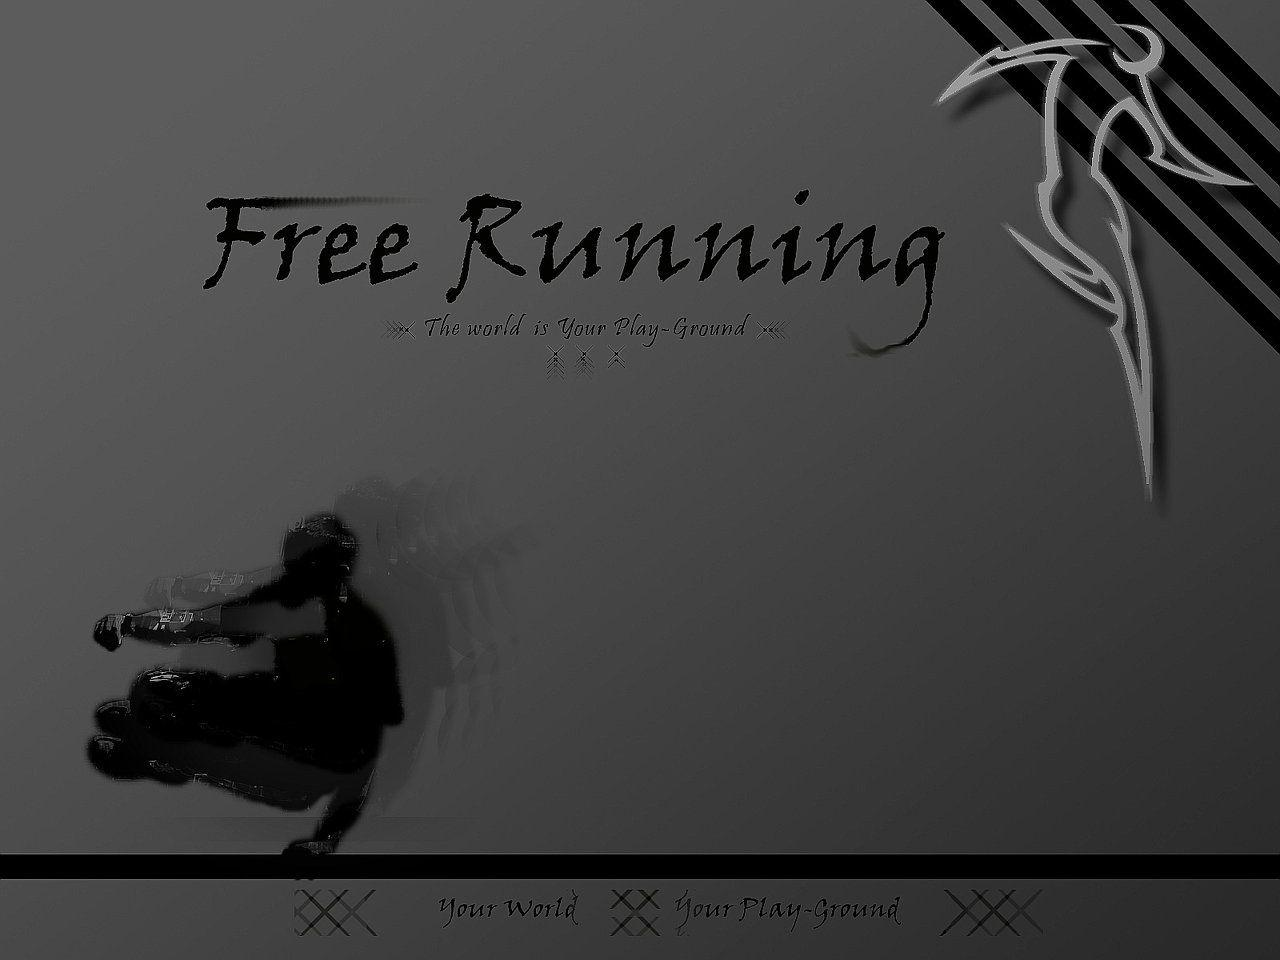 Backgrounds For Running Free Backgrounds | www.8backgrounds.com